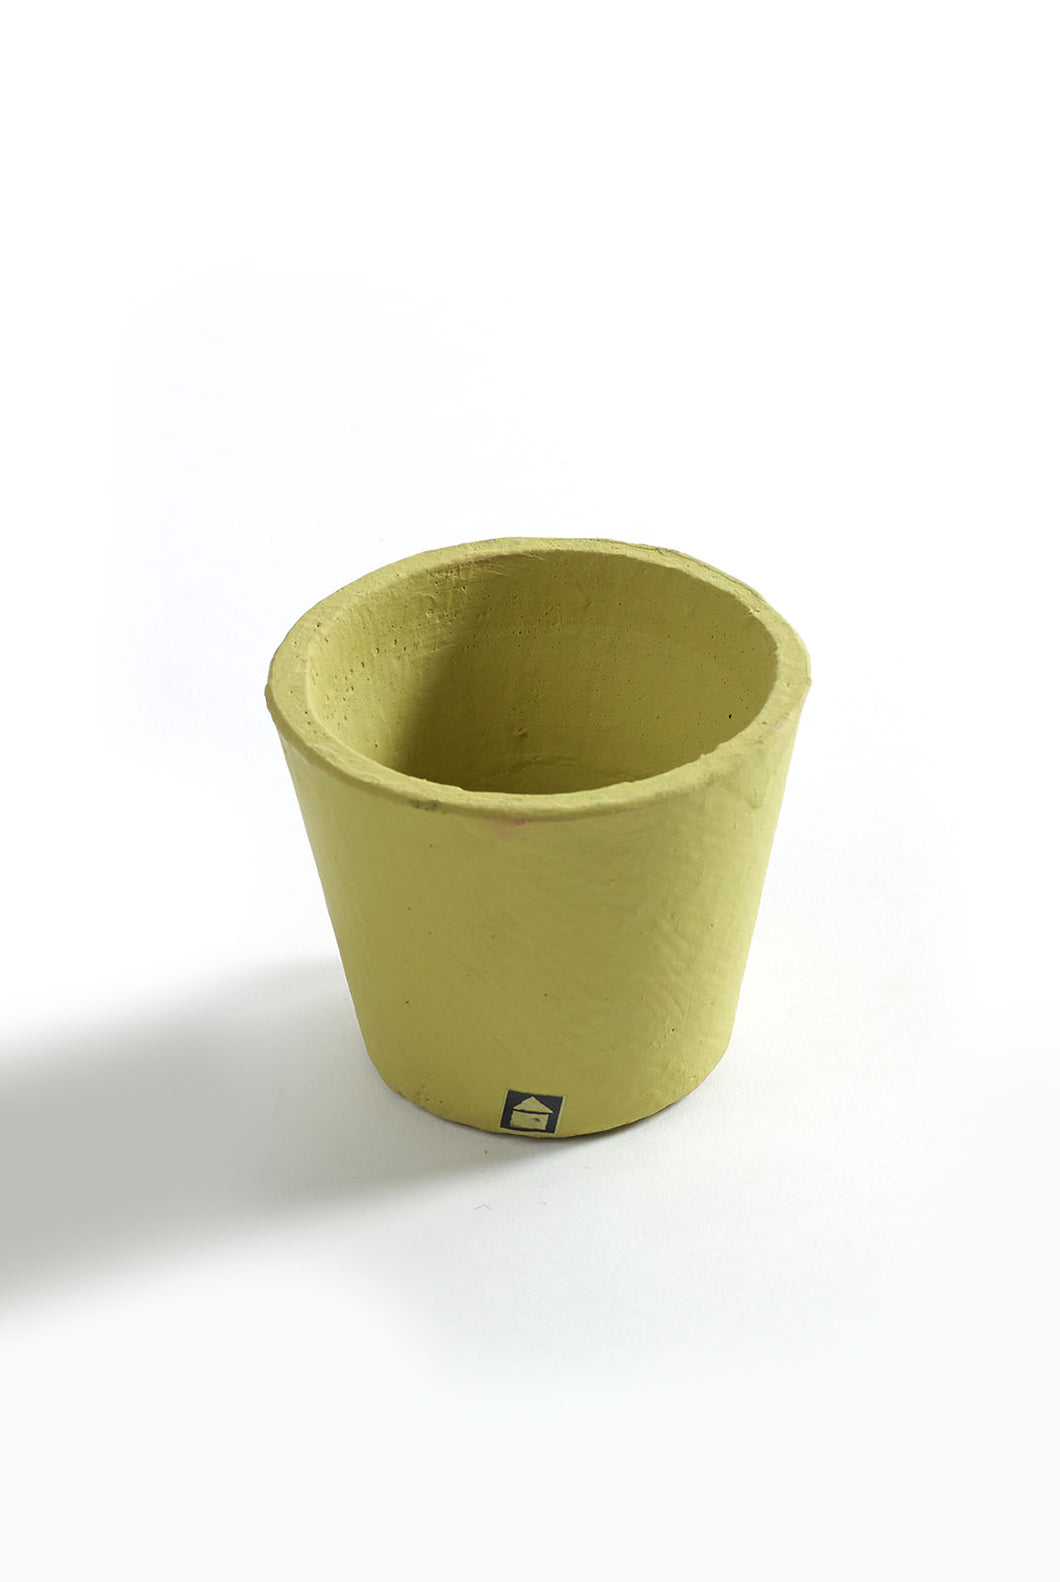 Serax - Pottery Collection - Stoneware Flower Pot - Extra Small - Pale Green